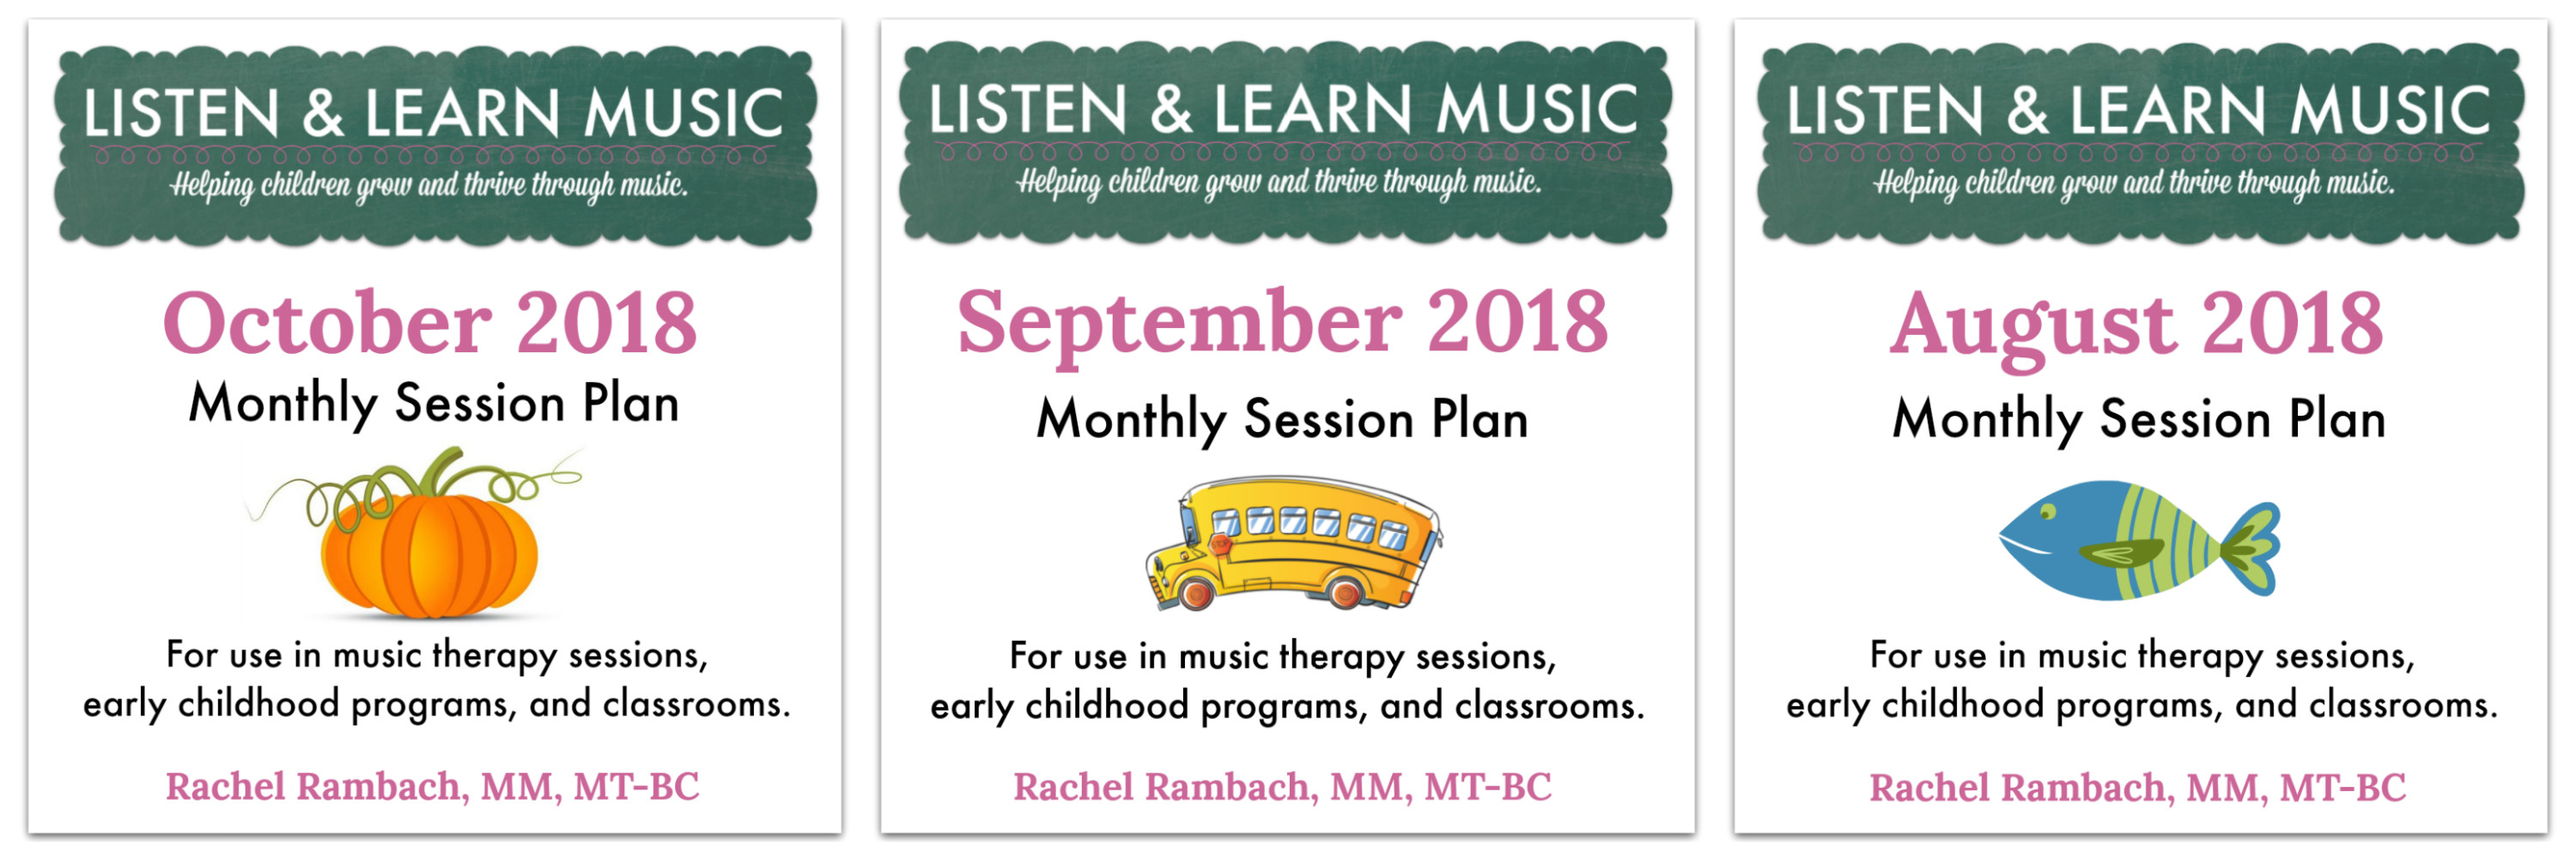 Monthly Session Plans | Listen & Learn Music